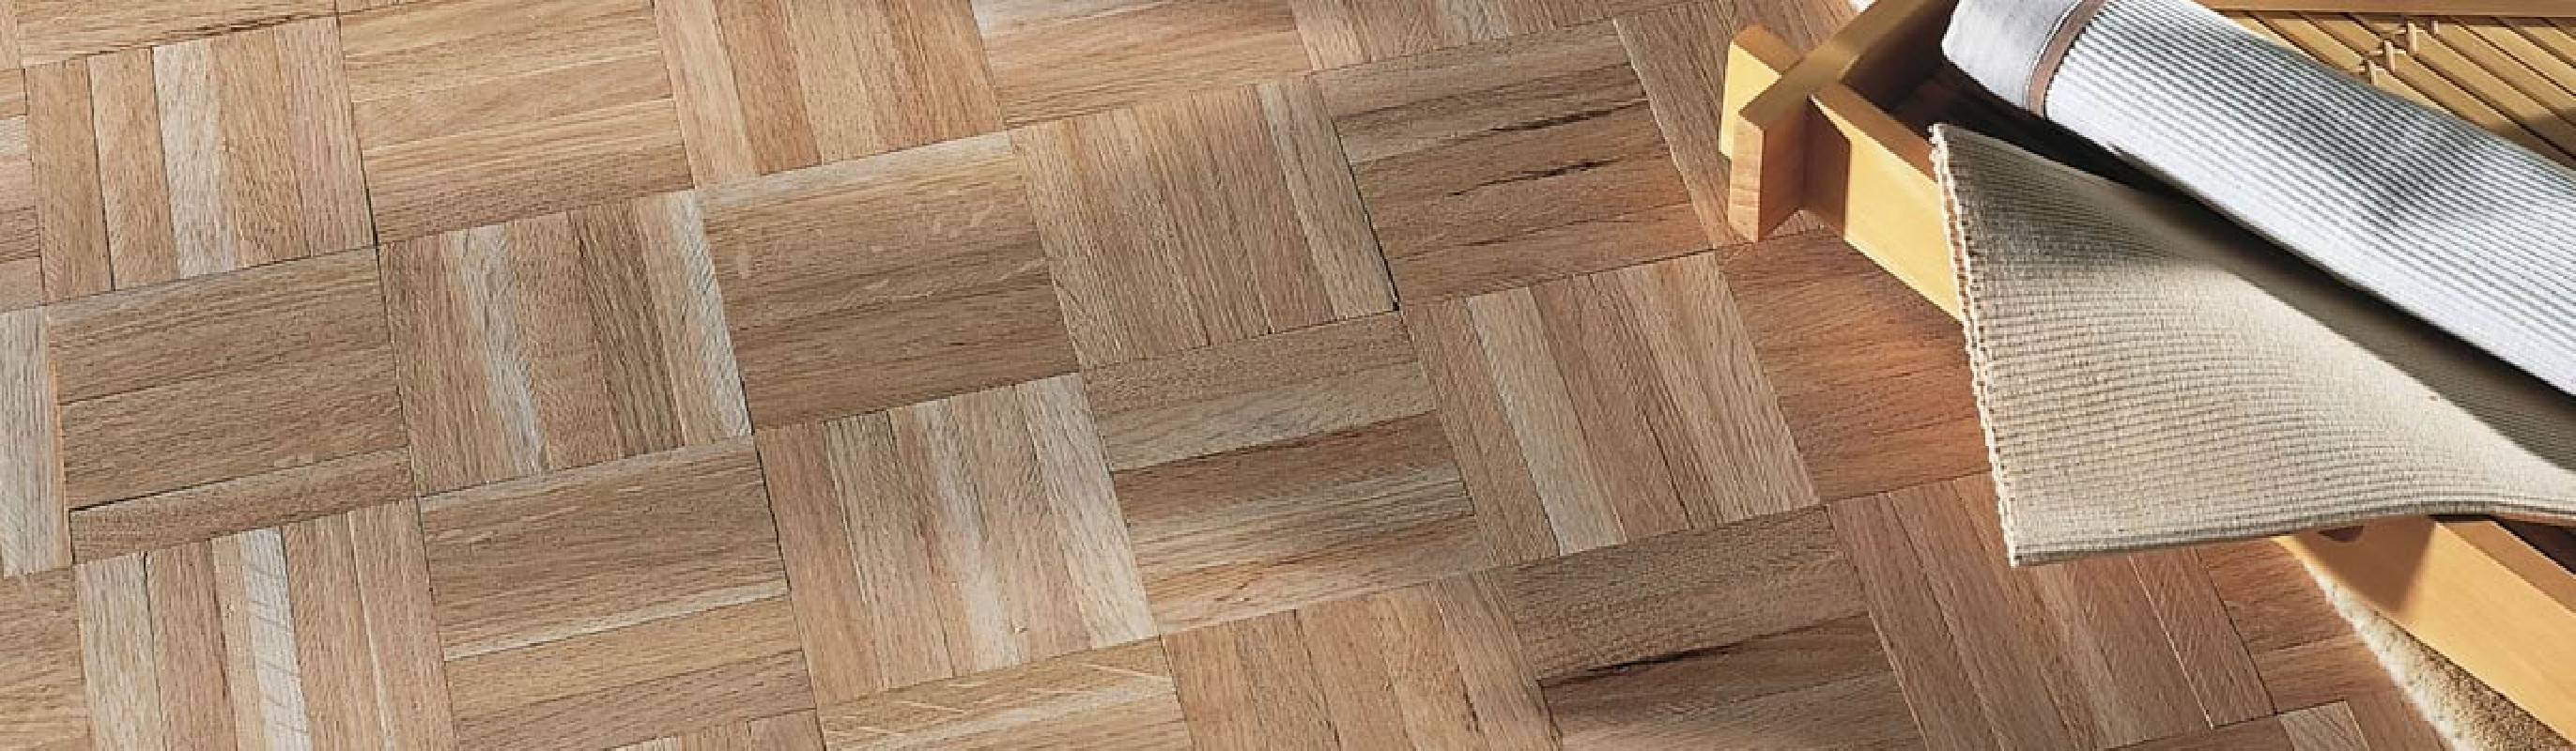 parquet massif mosaique trendy parquet mosaque chne nature damiers x x mm brut with parquet. Black Bedroom Furniture Sets. Home Design Ideas